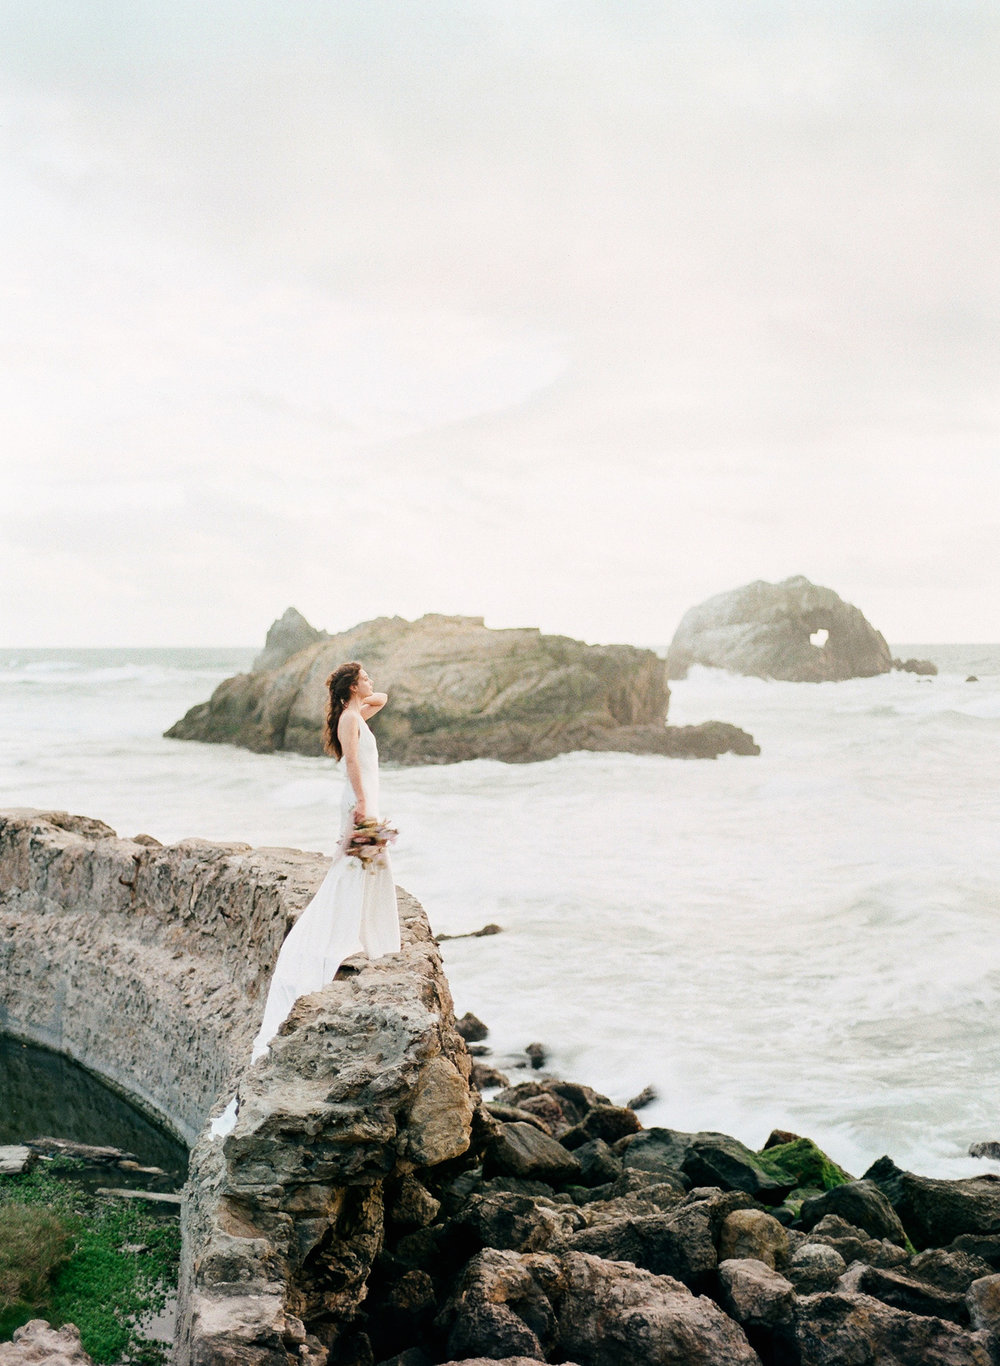 San-Francisco-Wedding-Film-Photography-30.jpg